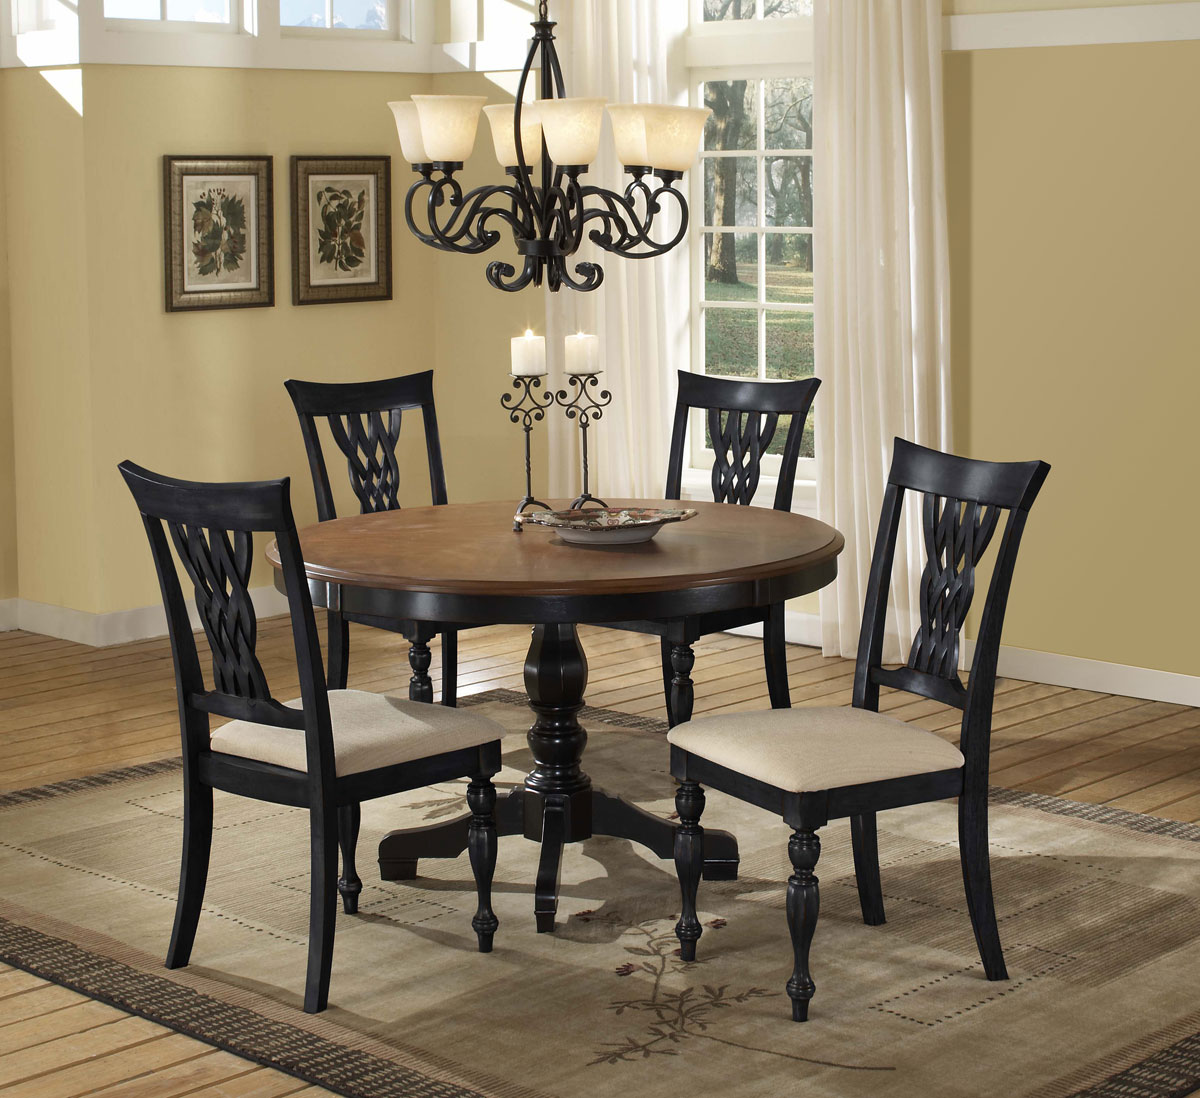 Hillsdale embassy round pedestal dining table rubbed black cherry